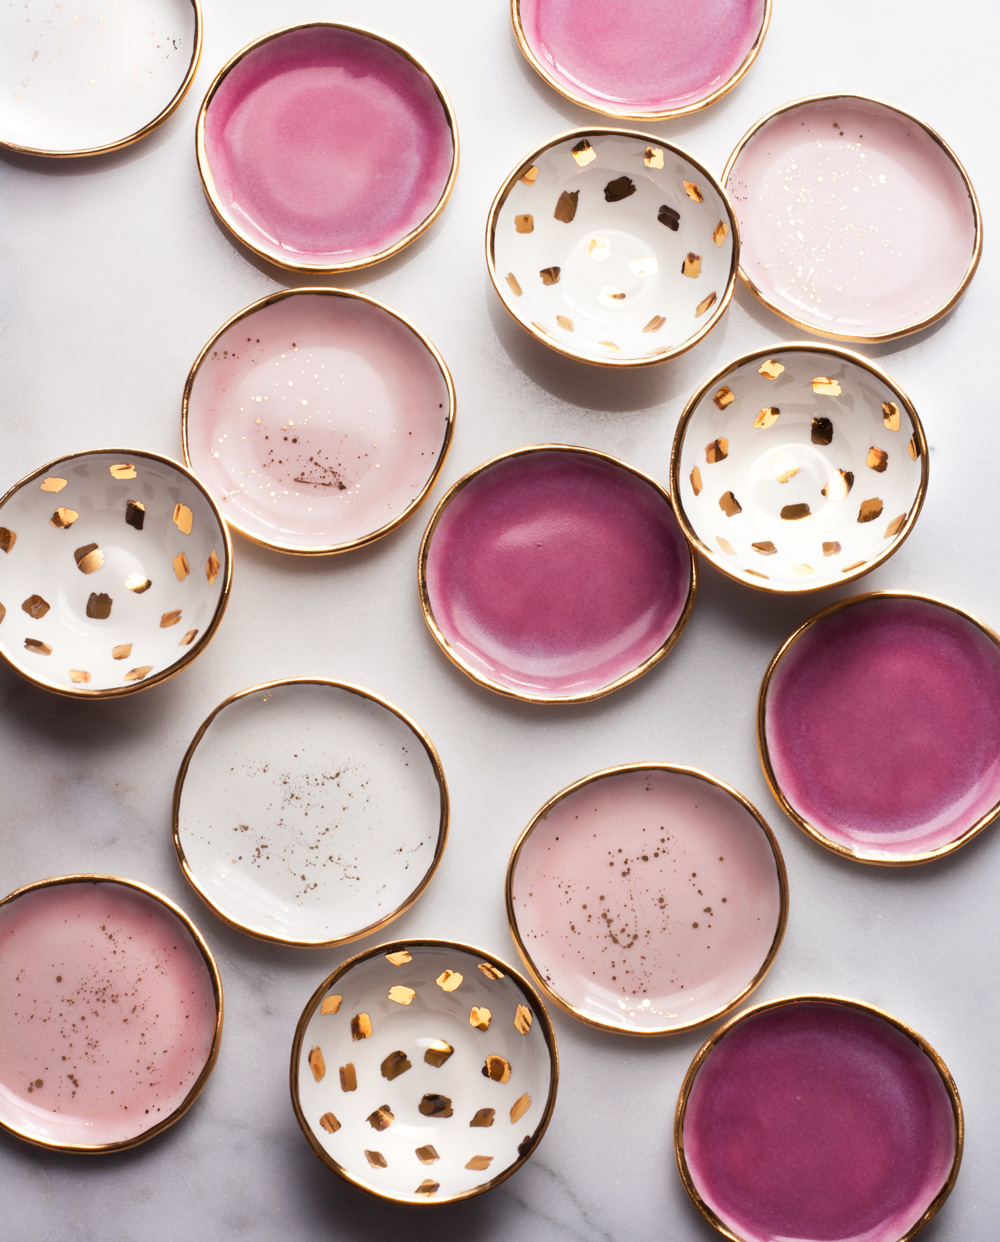 The Most Delicate Ceramics You Have Ever Seen-homesthetics (3)